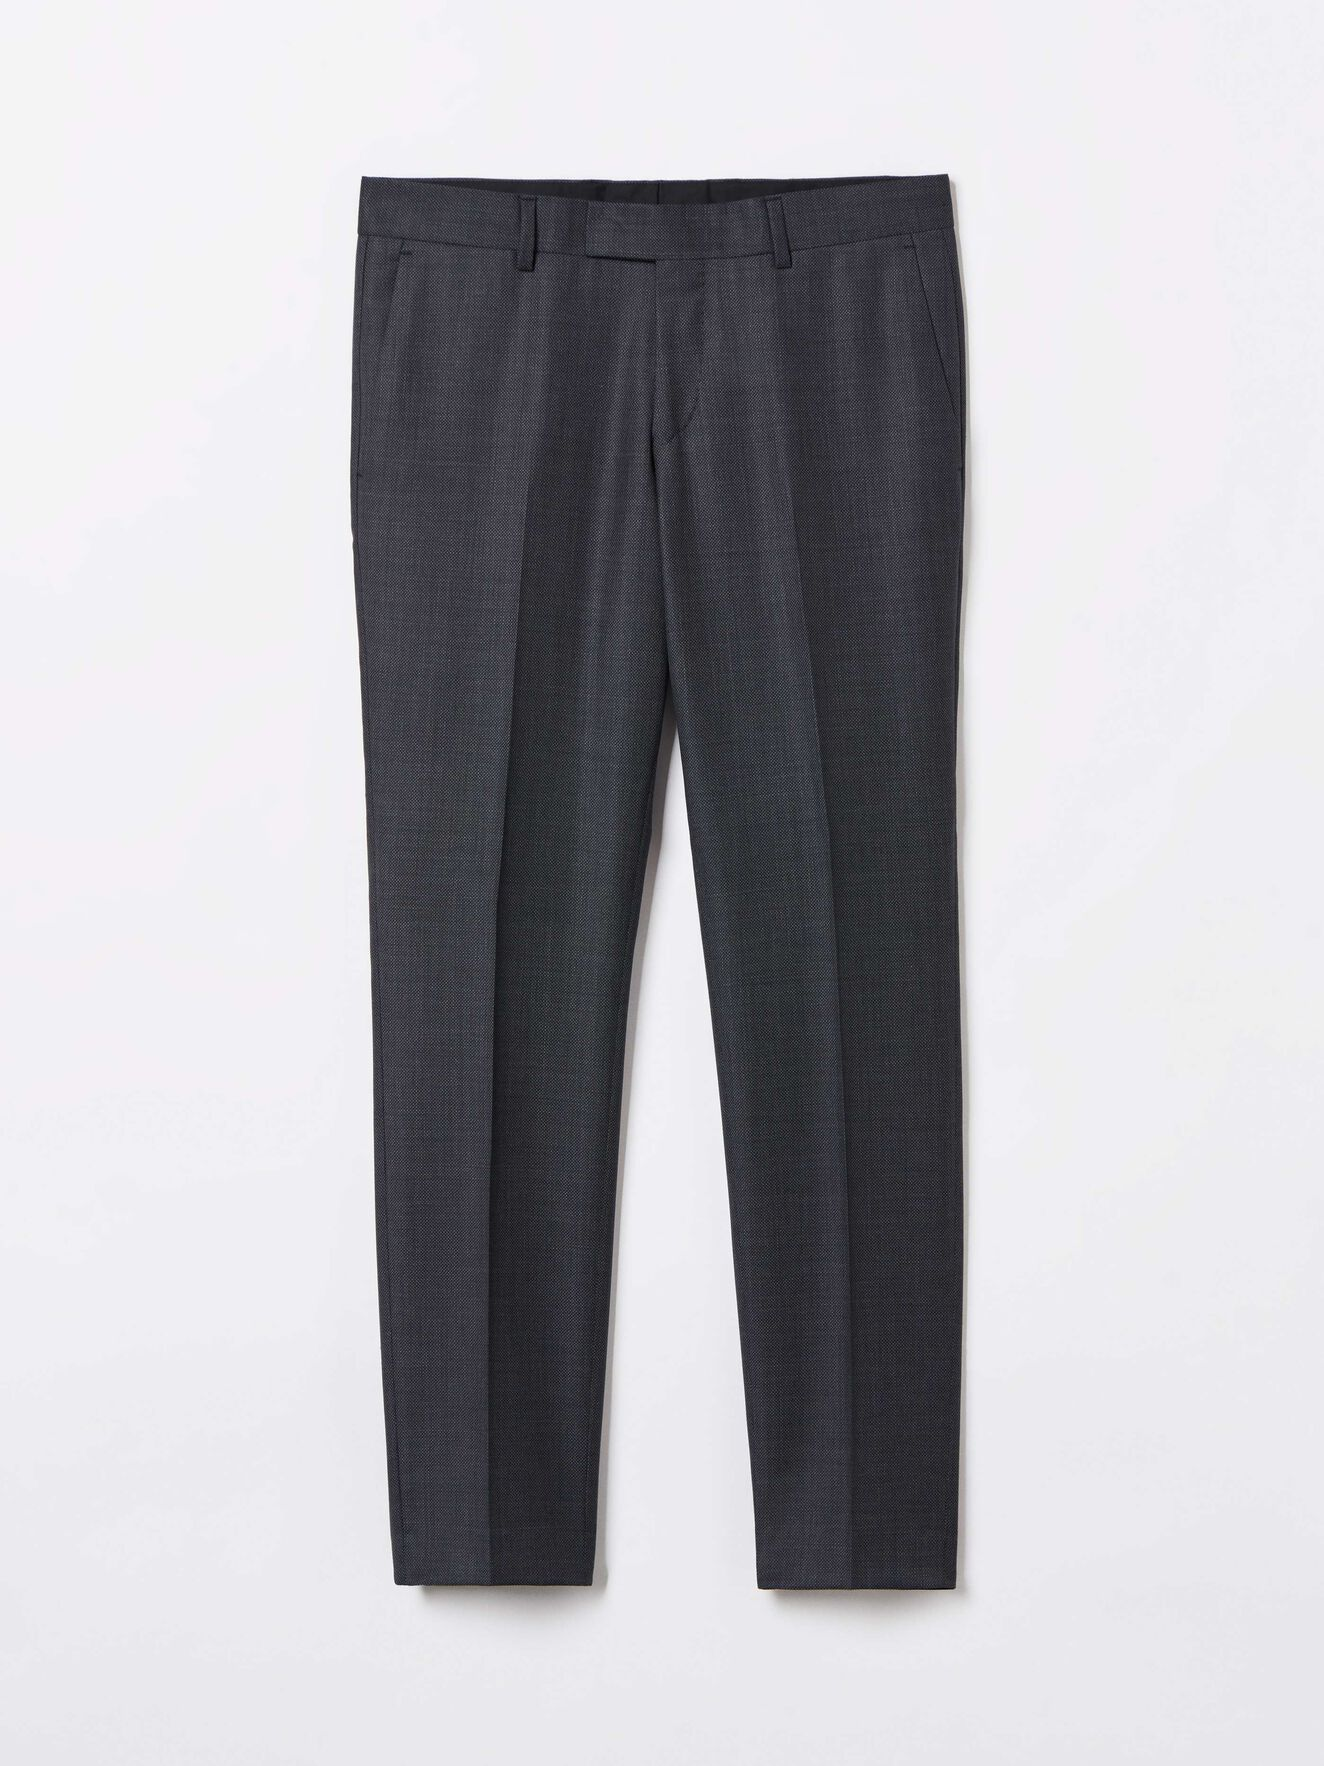 Tordon Trousers in Charcoal from Tiger of Sweden